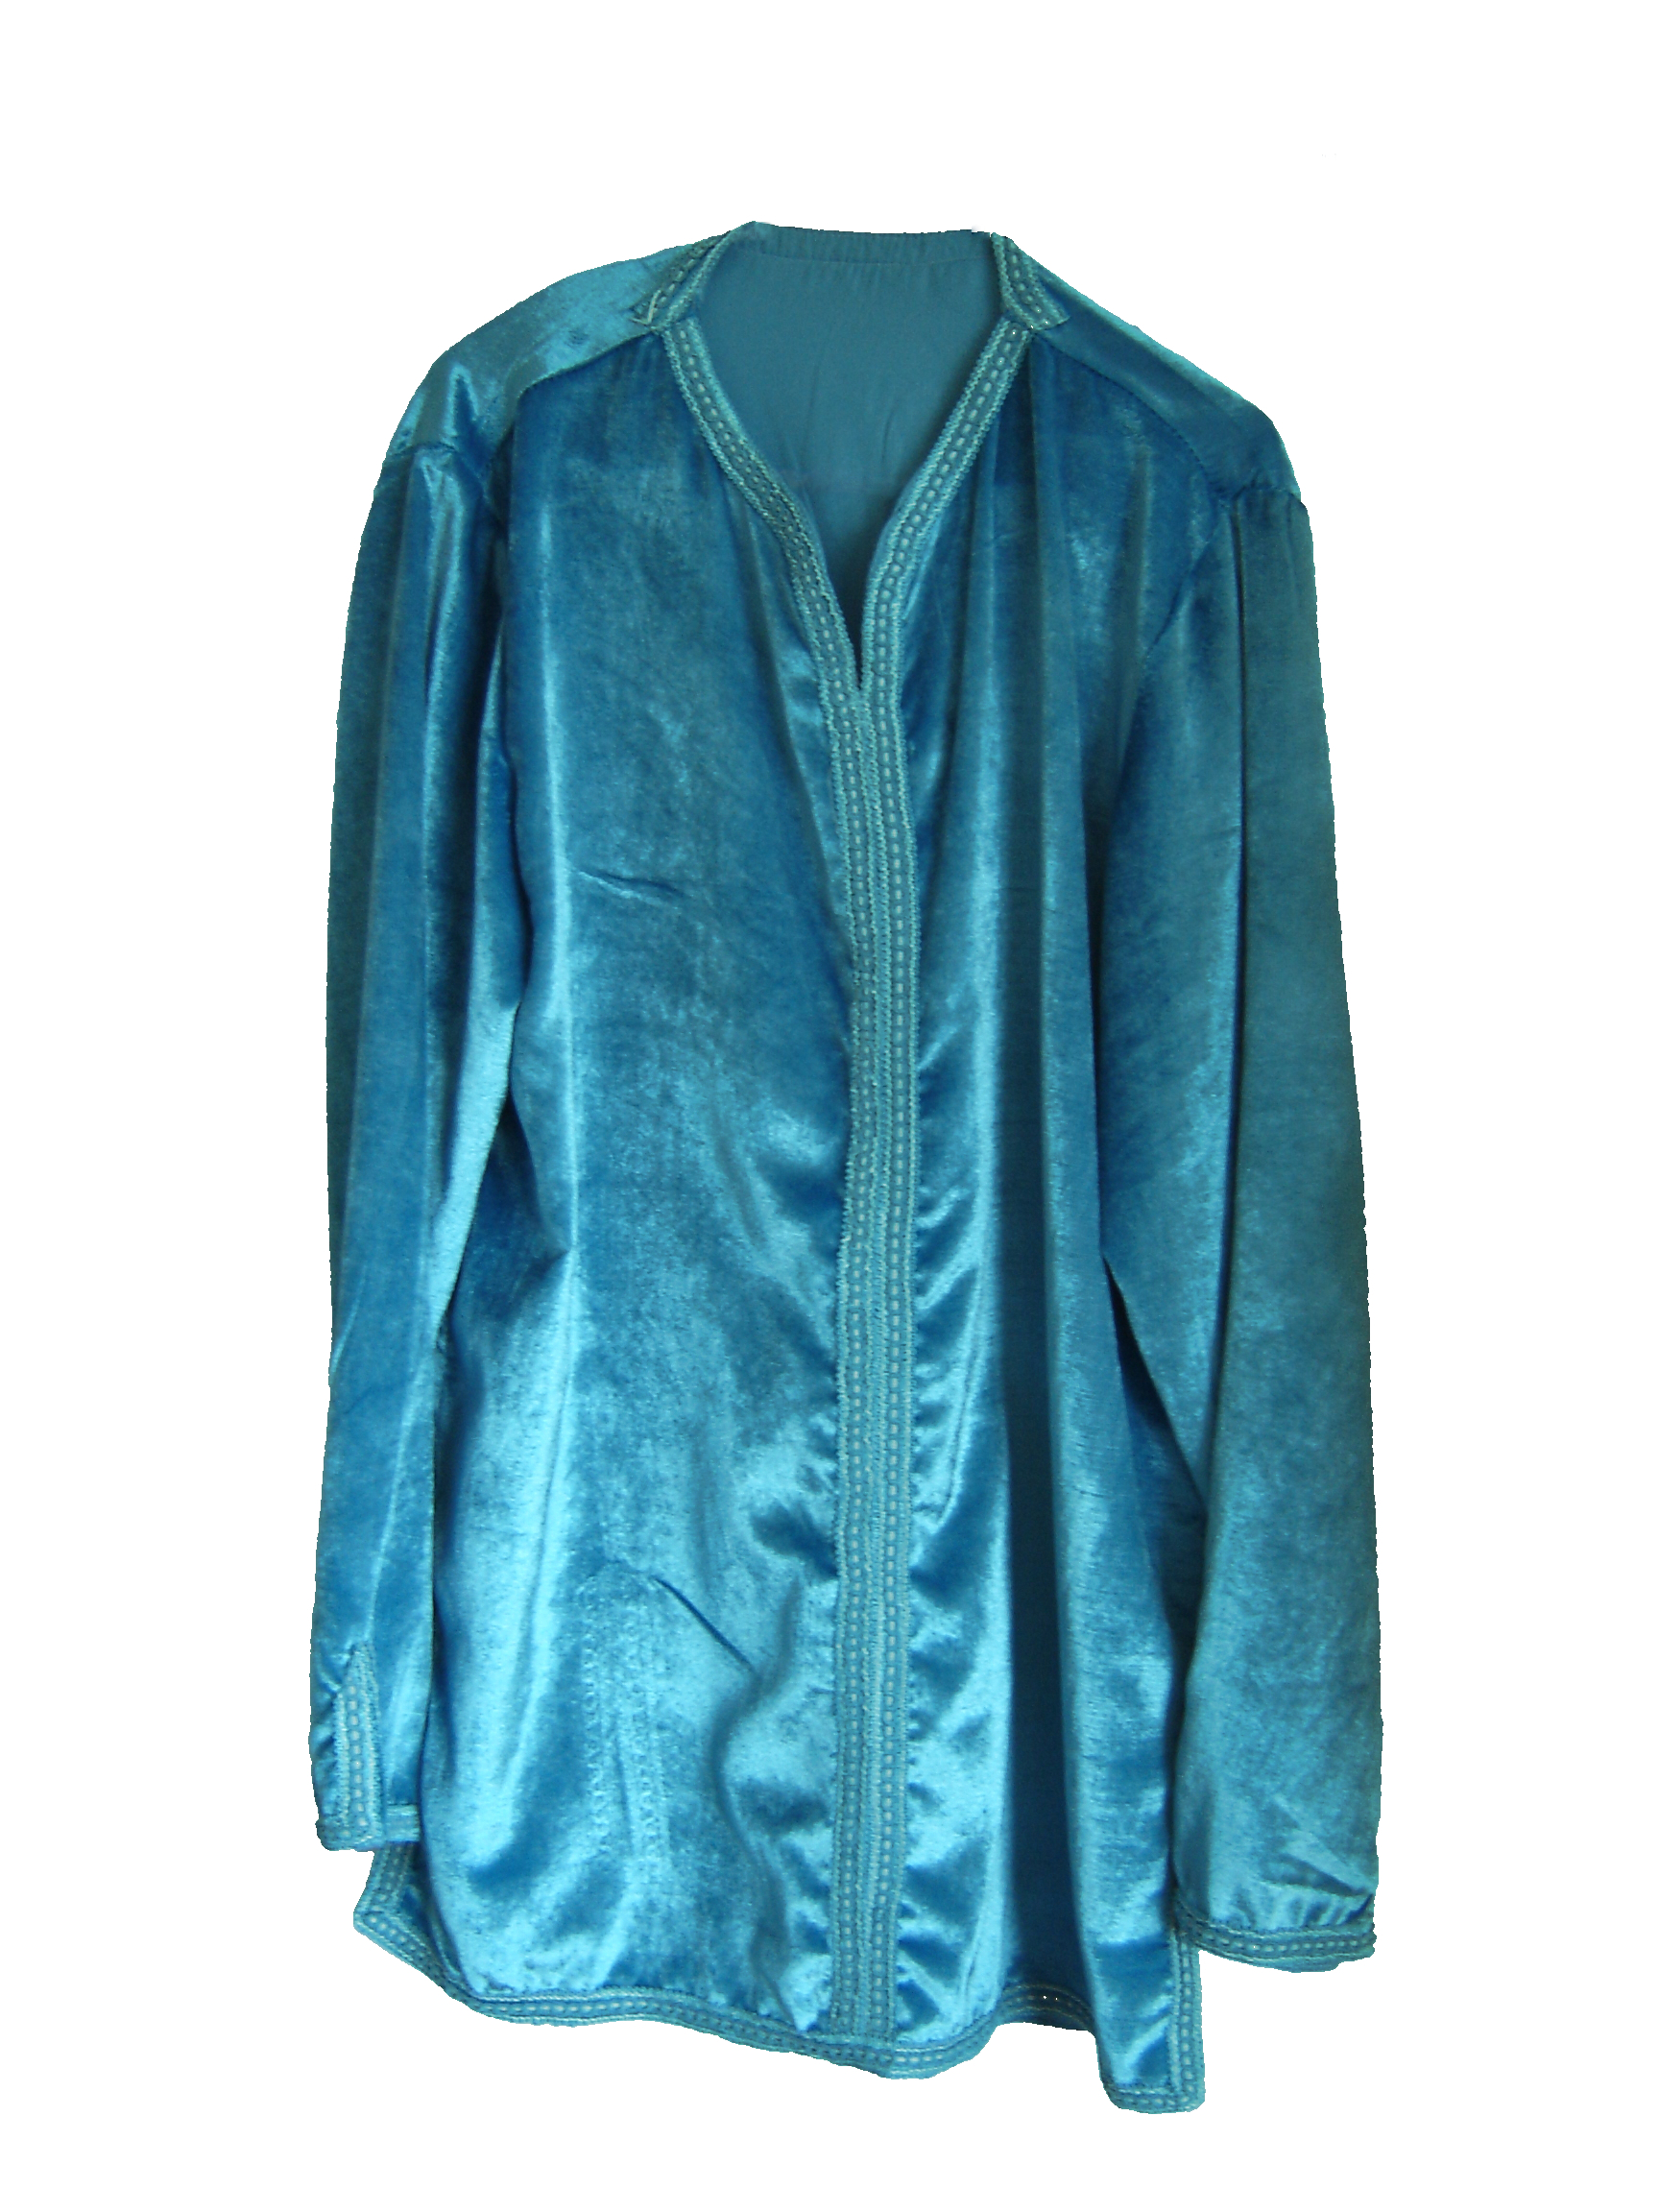 Ice blue velvet Moroccan shirt, from Fez, 71 Golborne Road, London